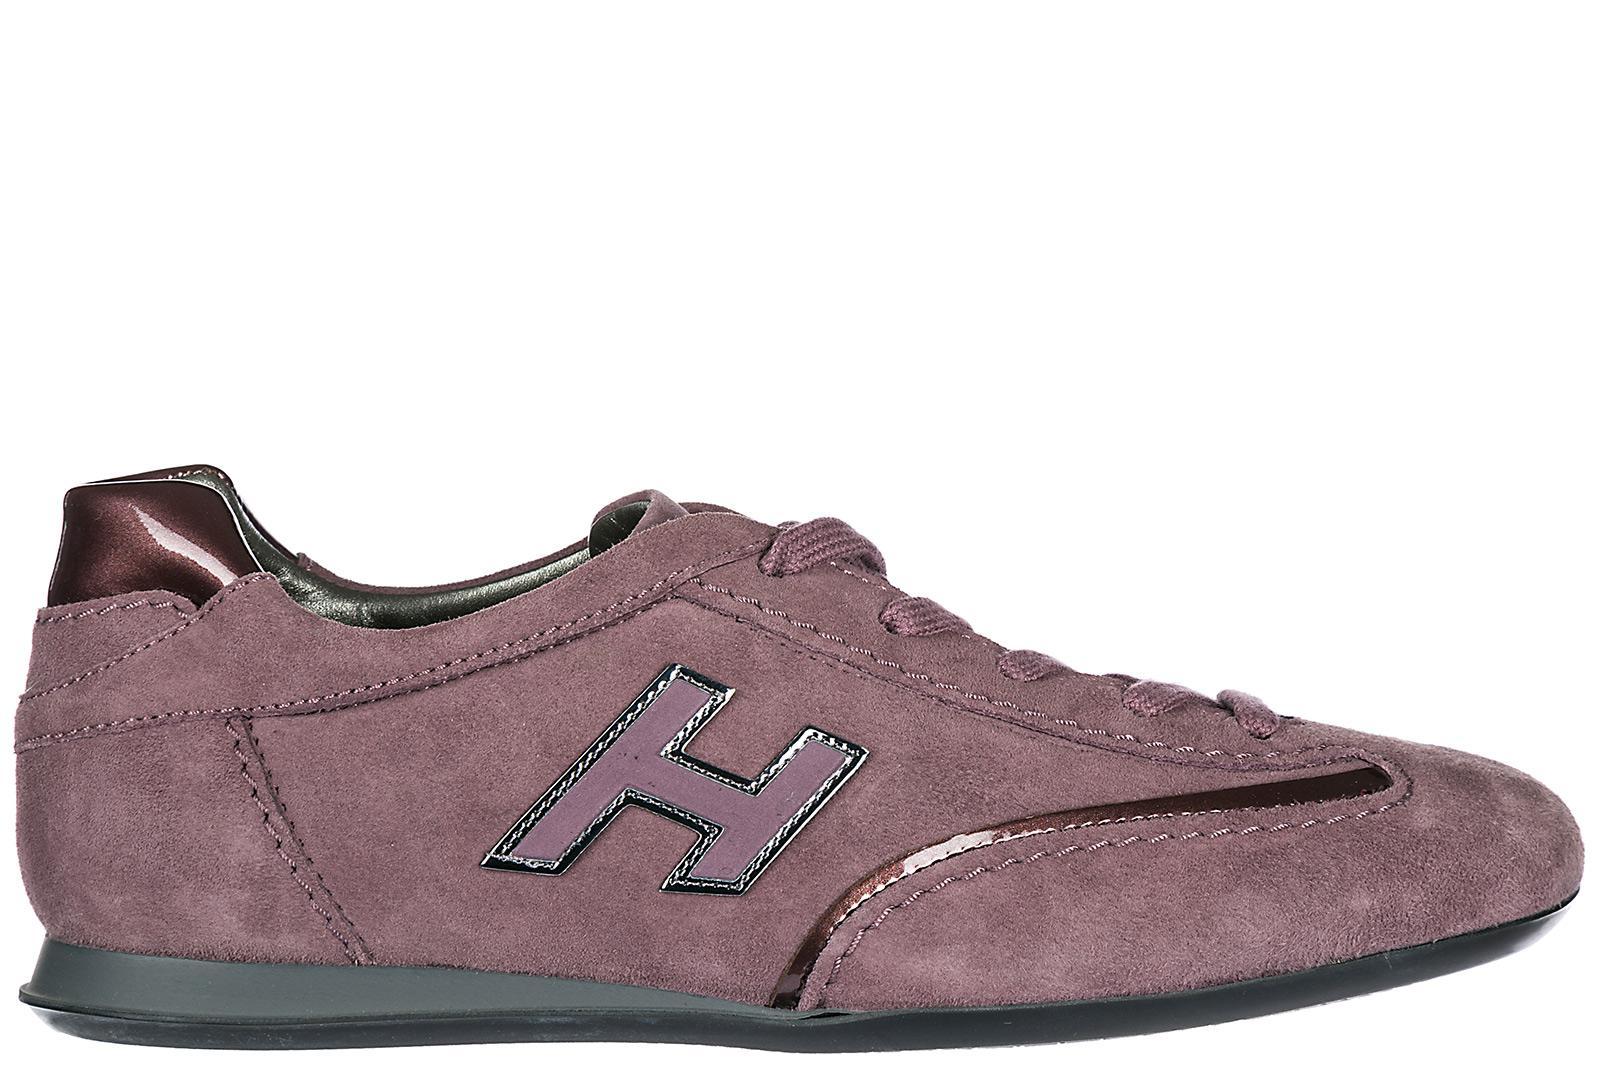 Hogan Women's Shoes Suede Trainers Sneakers Olympia H Flock In Purple